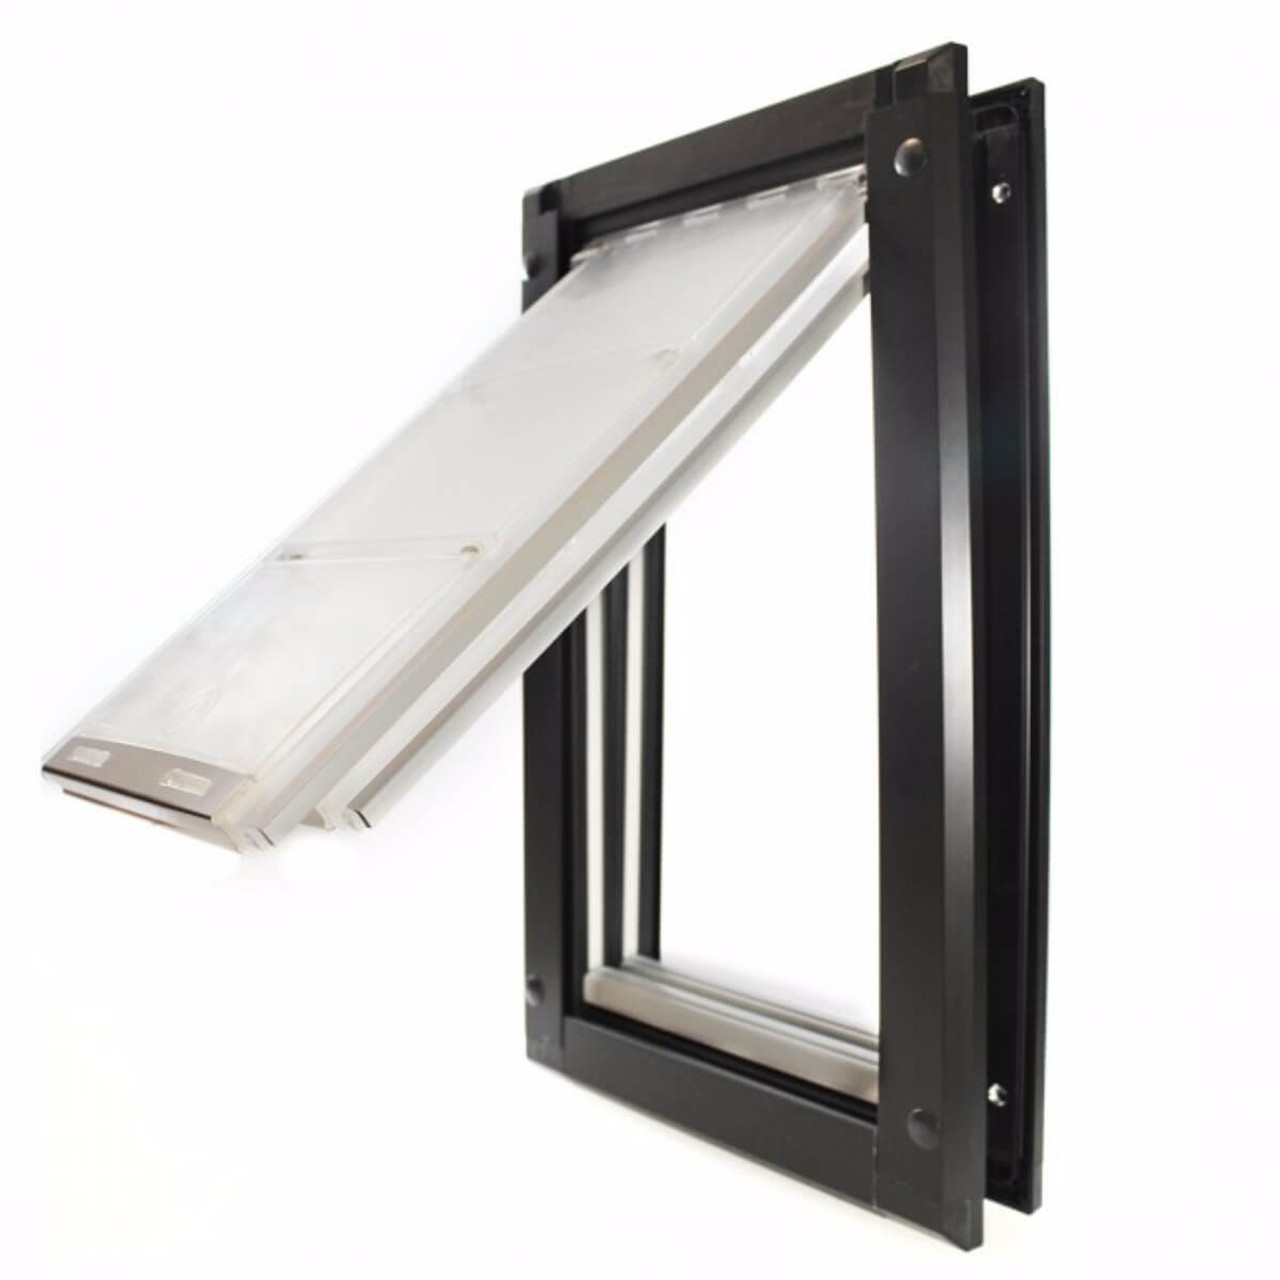 Exceptionnel Endura Flap Pet Doors Are Very Weather Tight And Feature Hollow Flaps That  Are Soft But